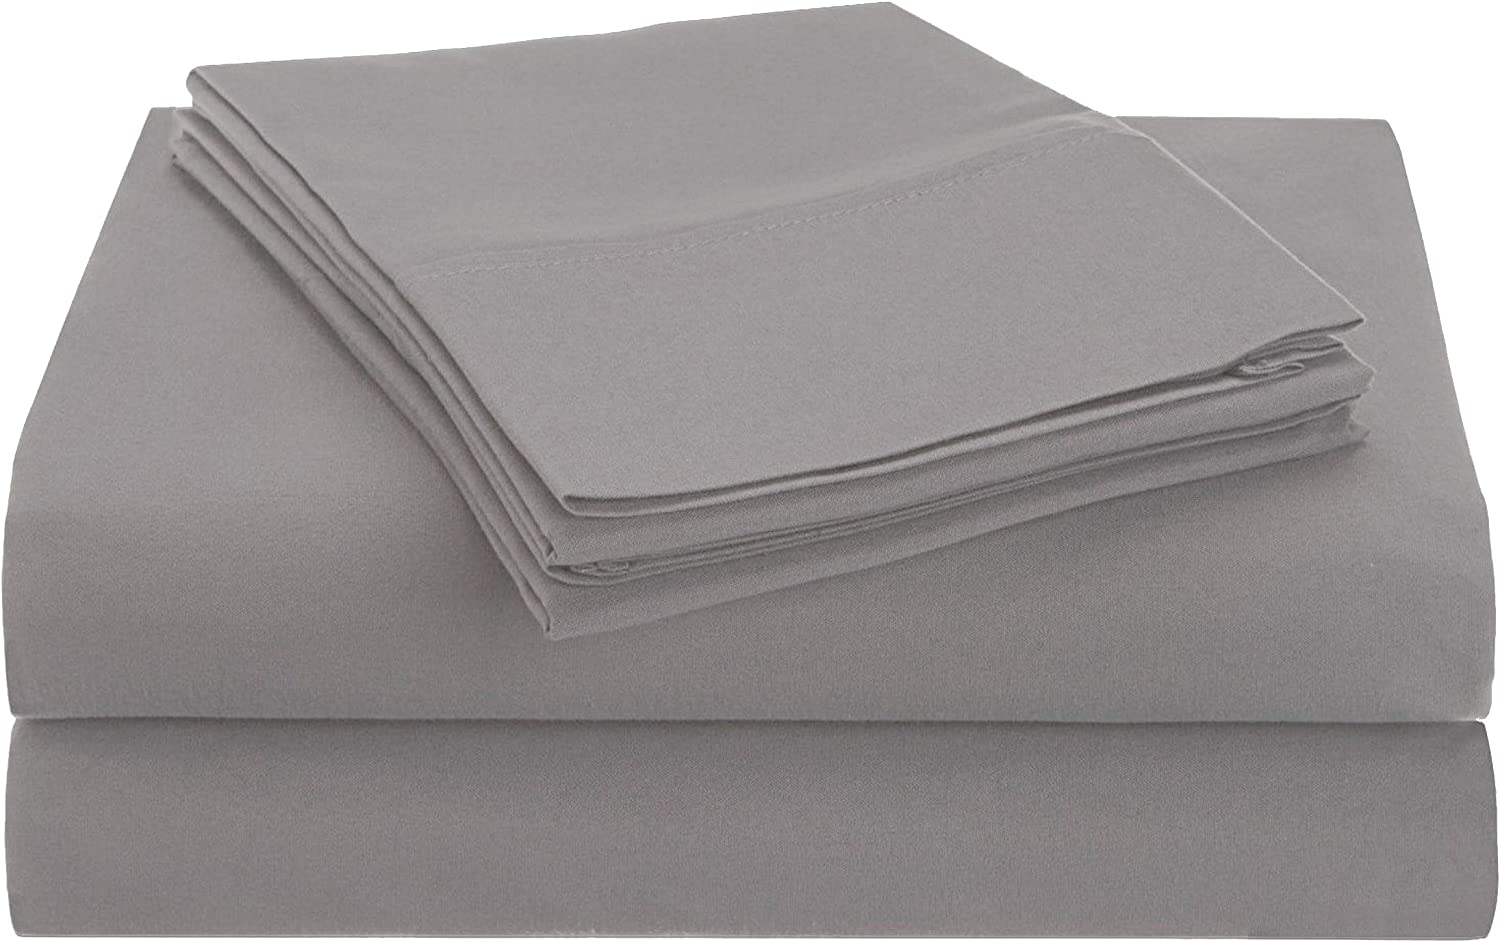 Superior 1500 Series Premium Quality 100% Brushed Soft Microfiber 3-Piece Luxury Deep Pocket Cooling Bed Sheet Set, Hypoallergenic, Wrinkle and Stain Resistant - Twin XL, Silver